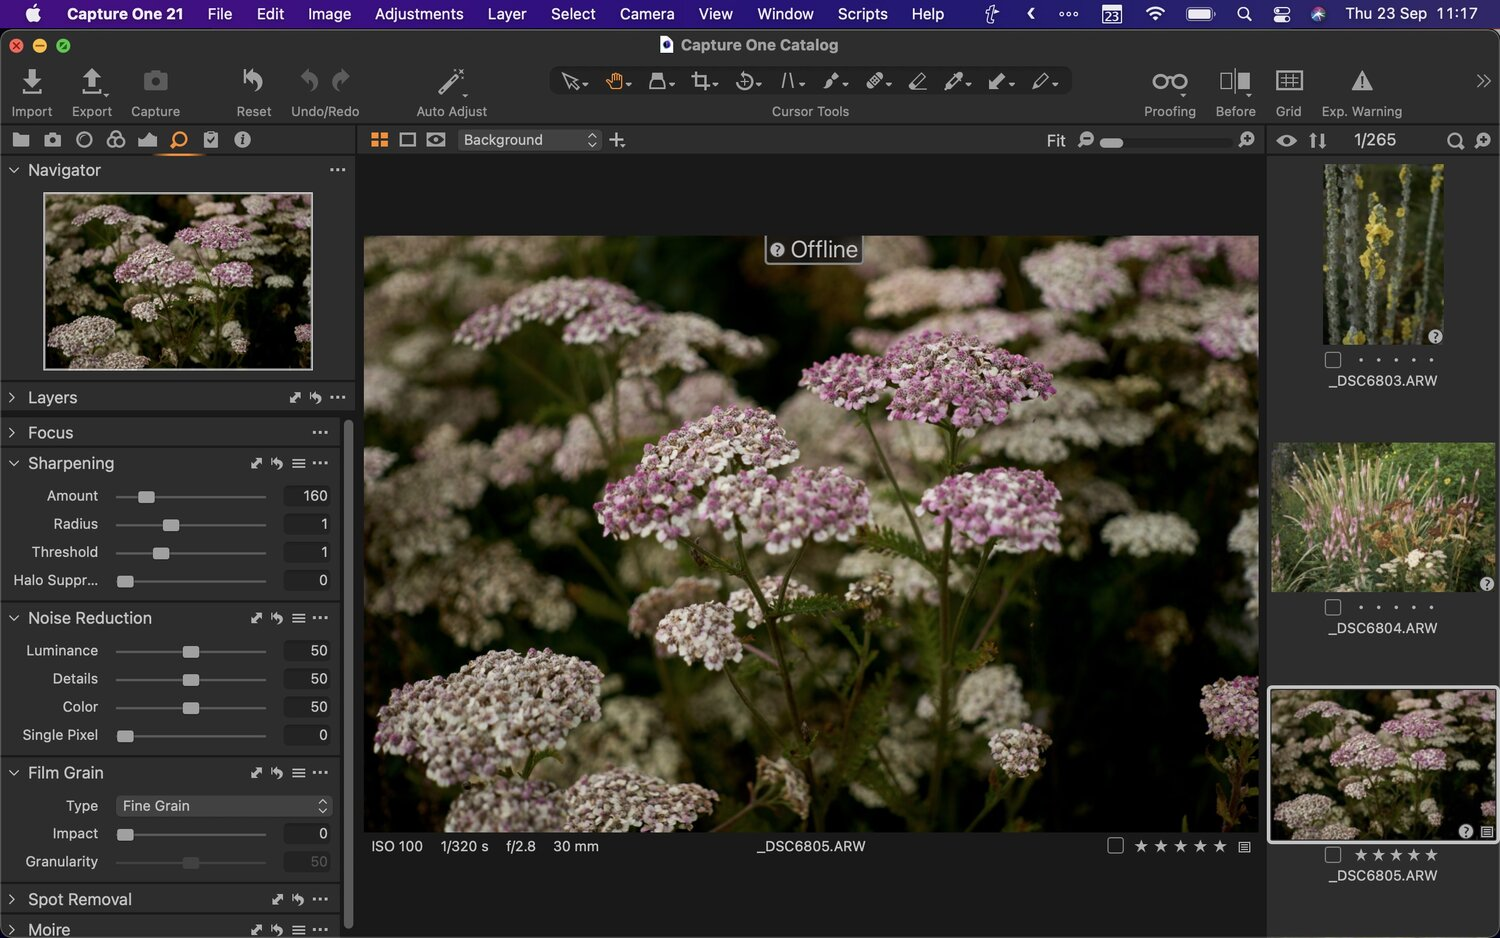 A Cool Capture One Feature You May Not Be Aware Of – Working With Offline Images